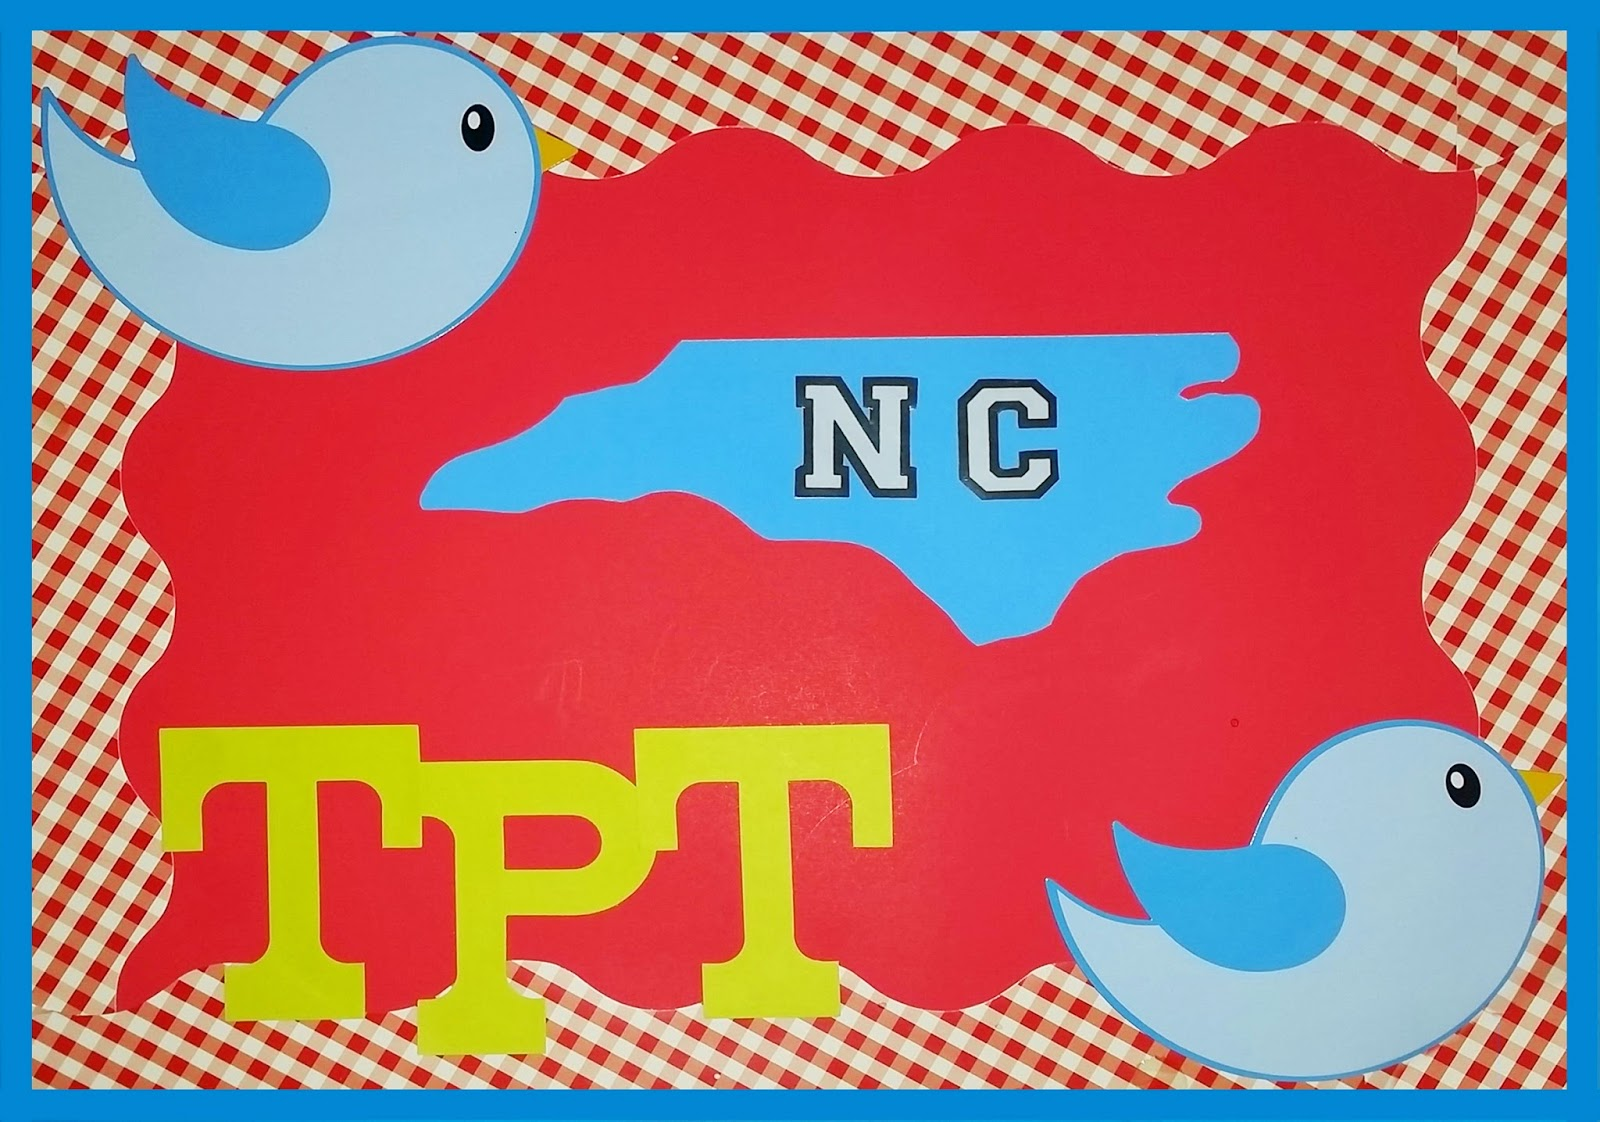 http://createdforlearning.blogspot.com/2015/02/teachers-pay-teachers-charlotte-edition.html